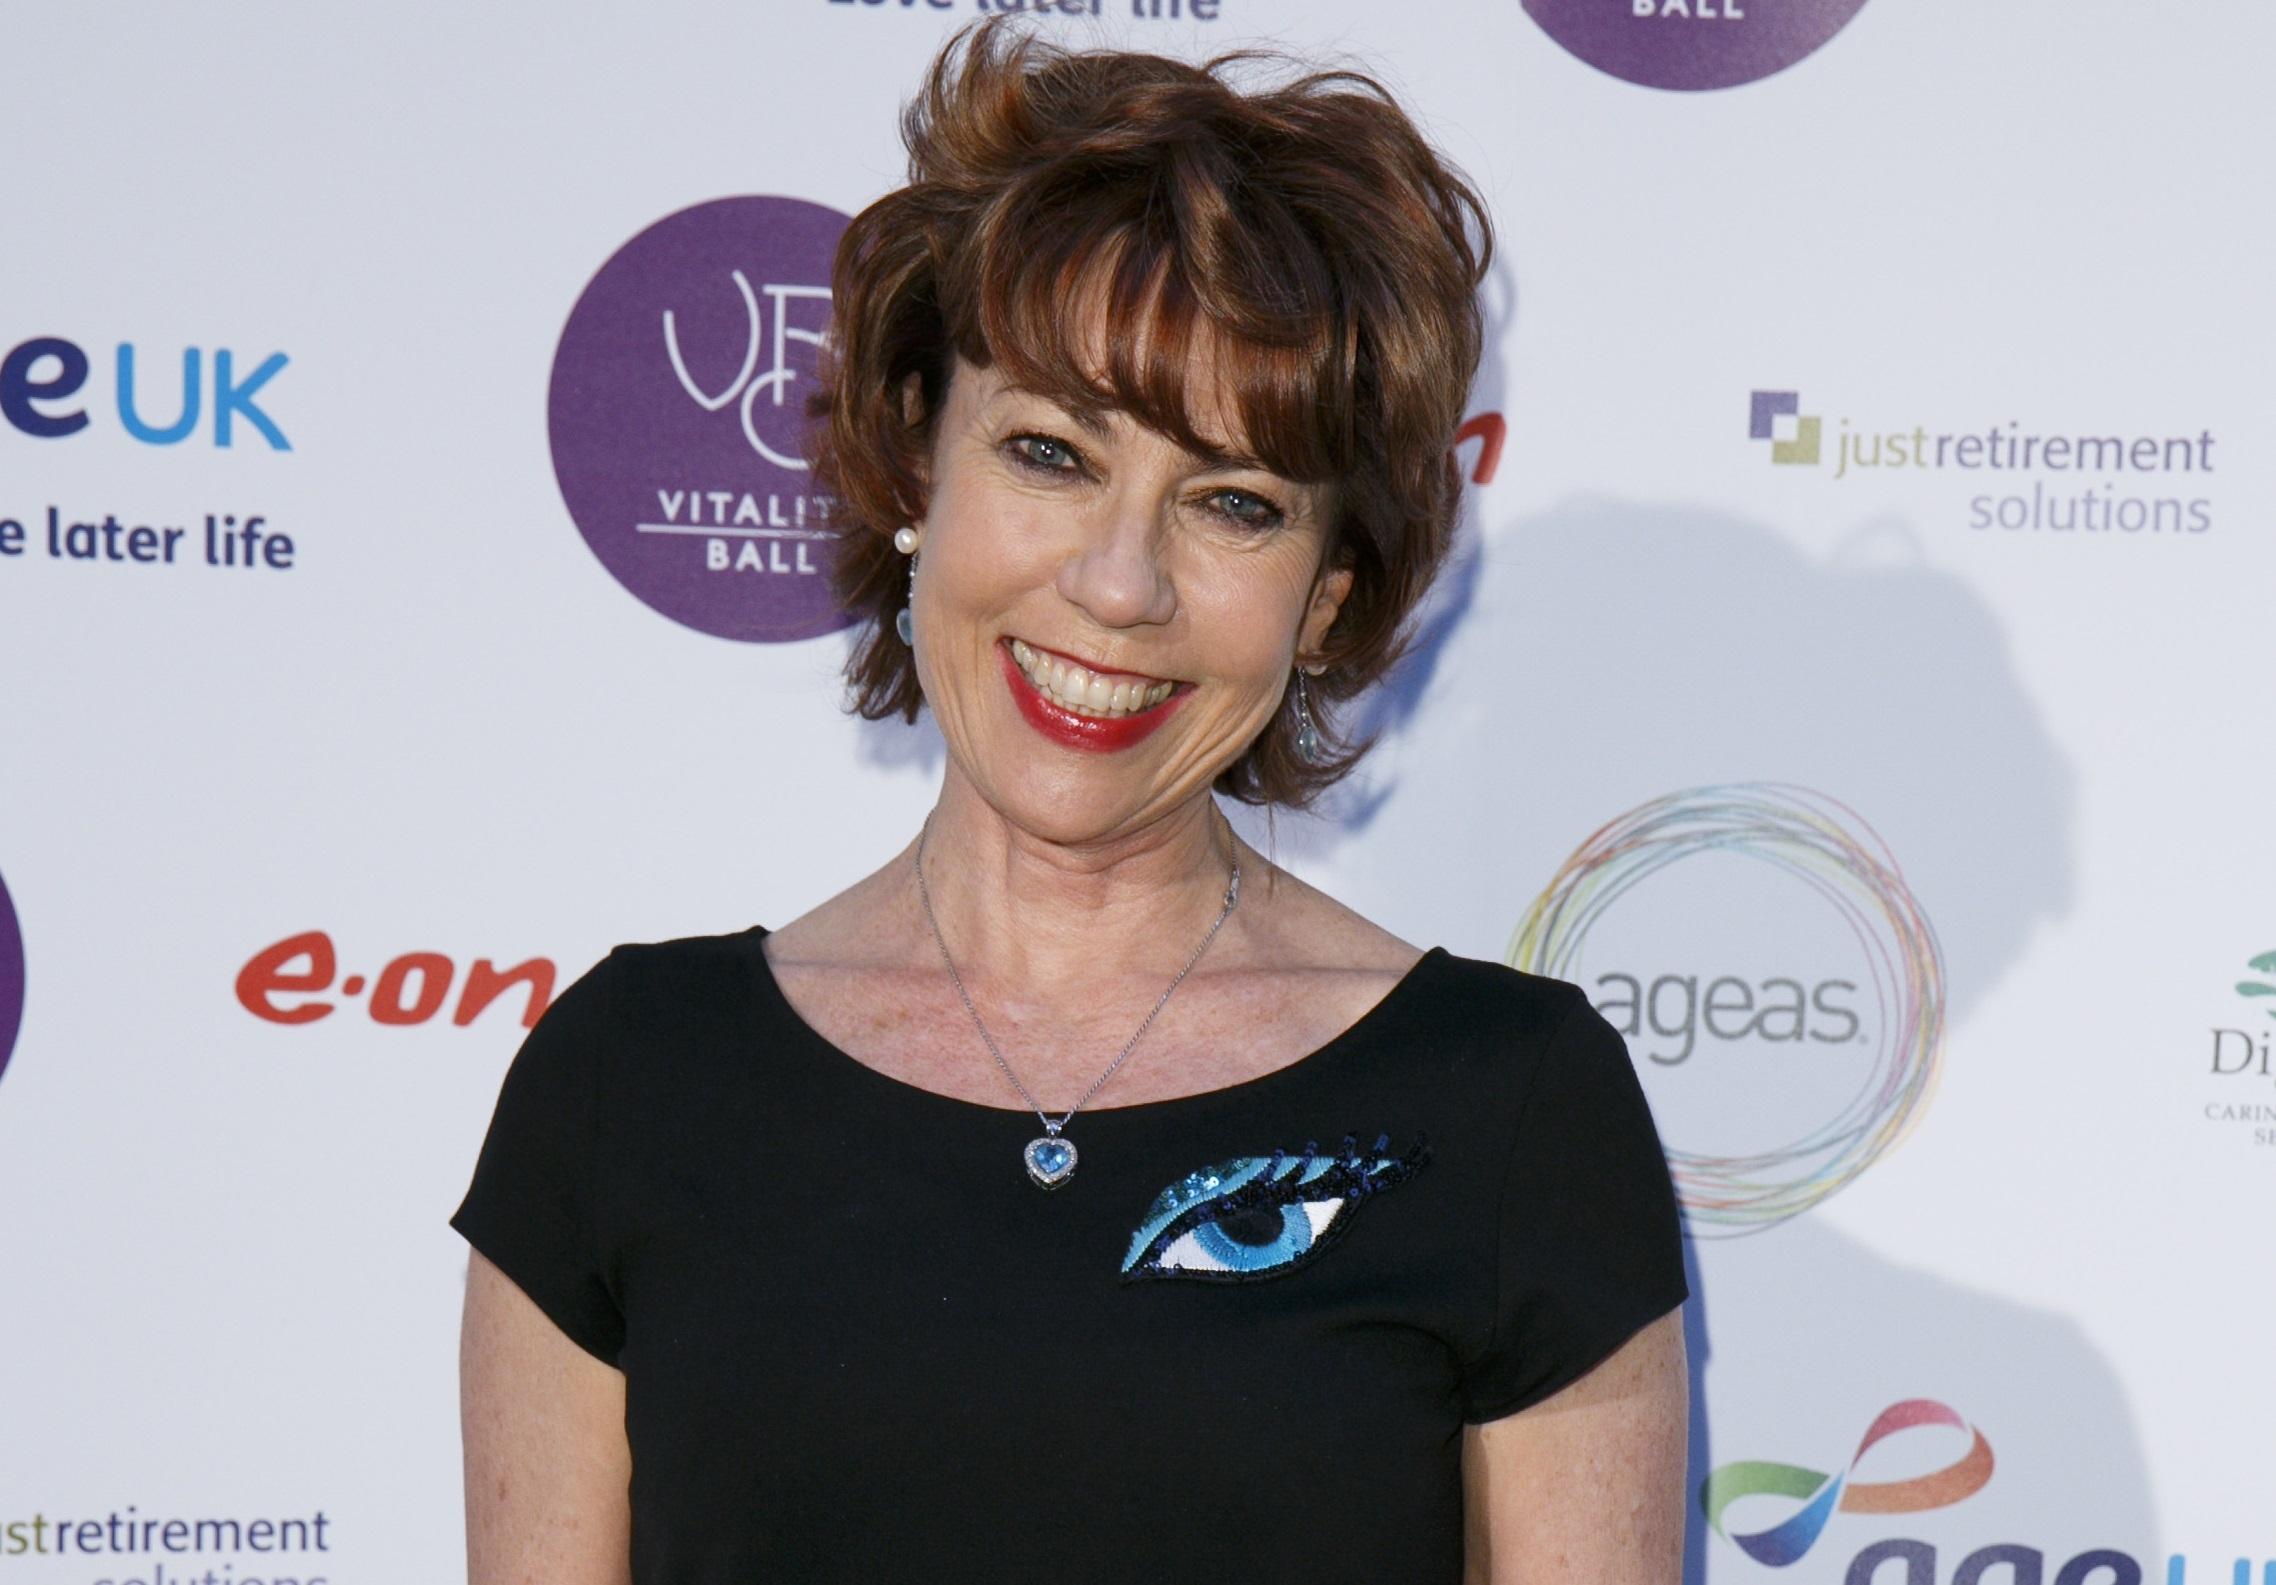 Kathy Lette (John Phillips/PA Wire)